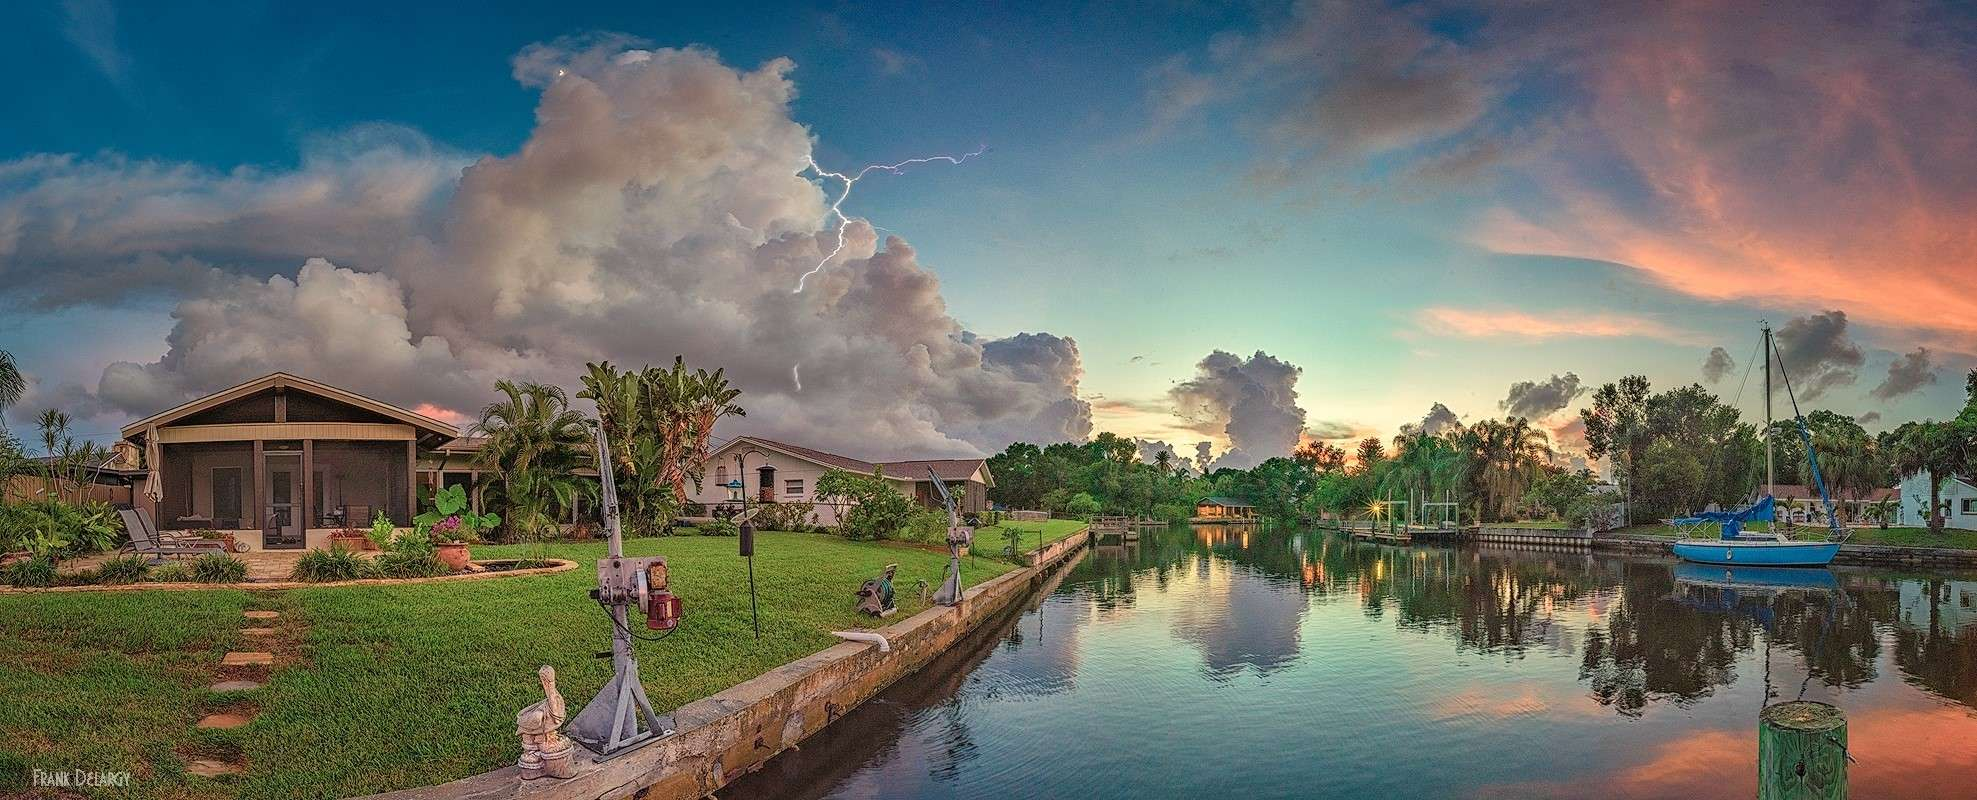 A couple of evenings ago we had an interesting sunset with red/pink clouds and a storm brewing at the same time. I took this 6 image ,180 degree pano as the storm was just ramping up